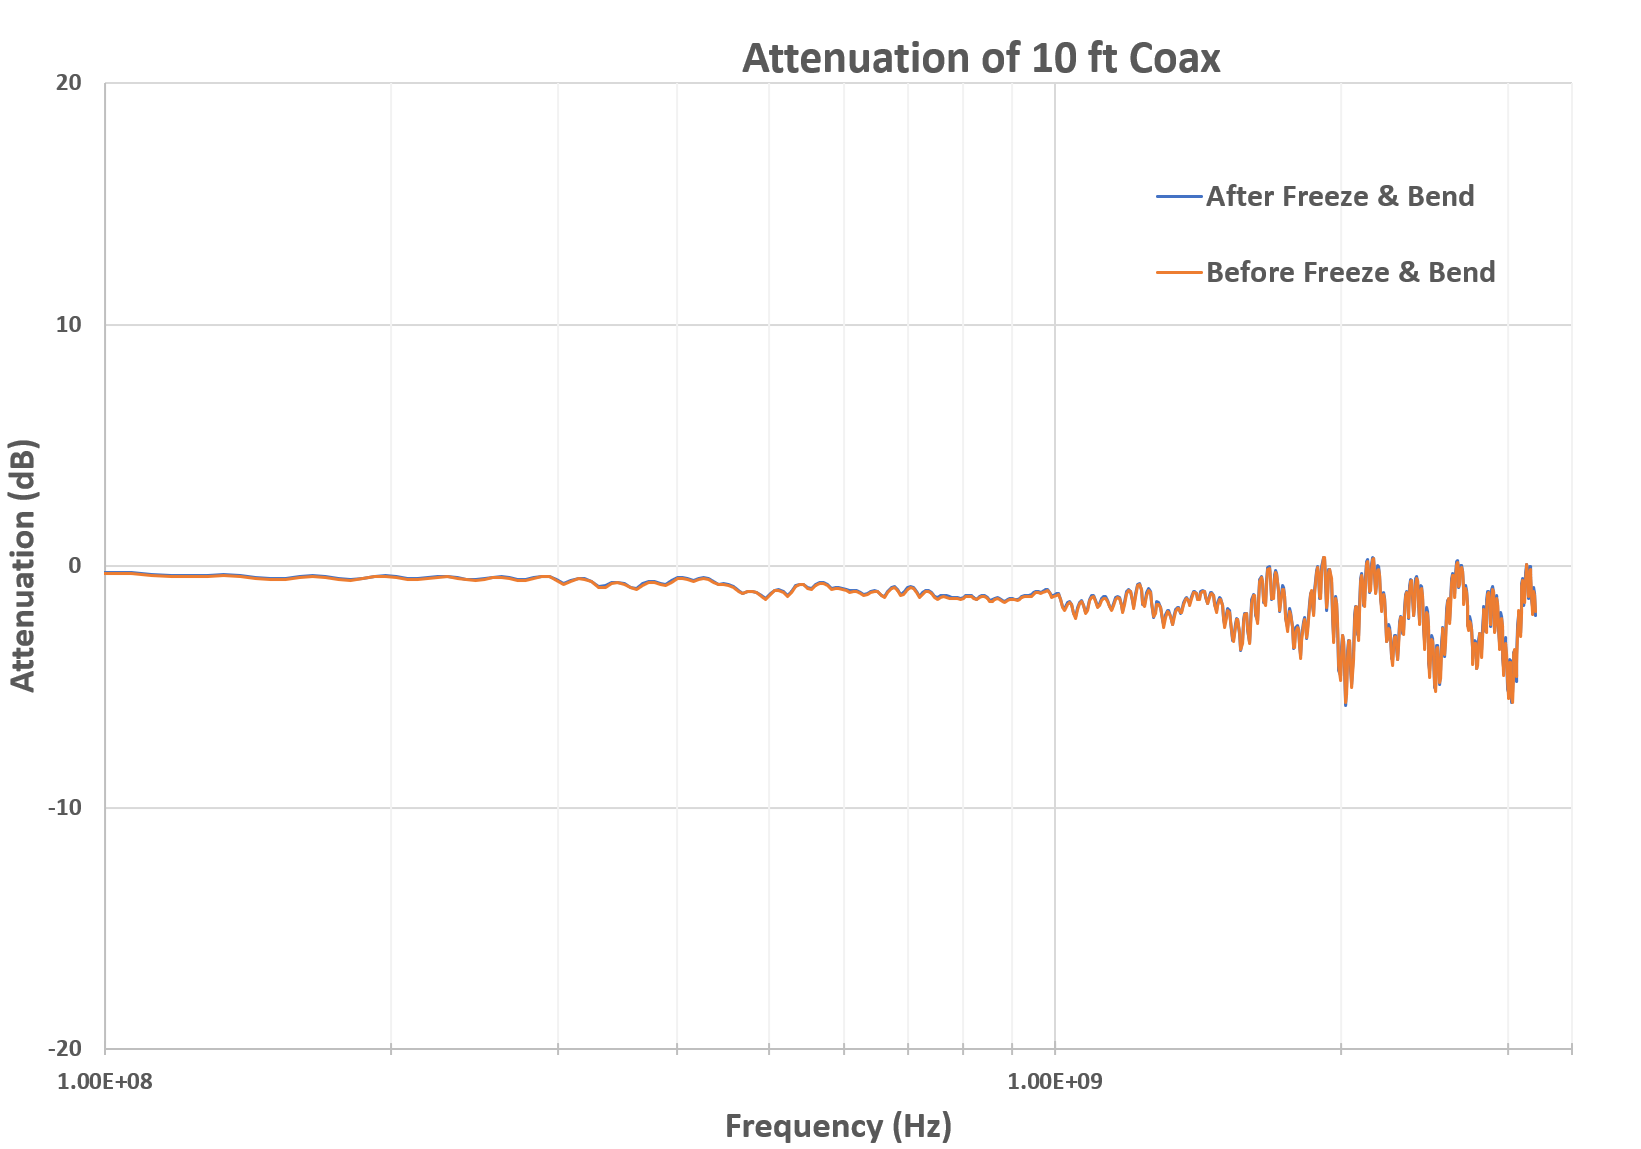 Attenuation of coaxial cable after low temperature exposure